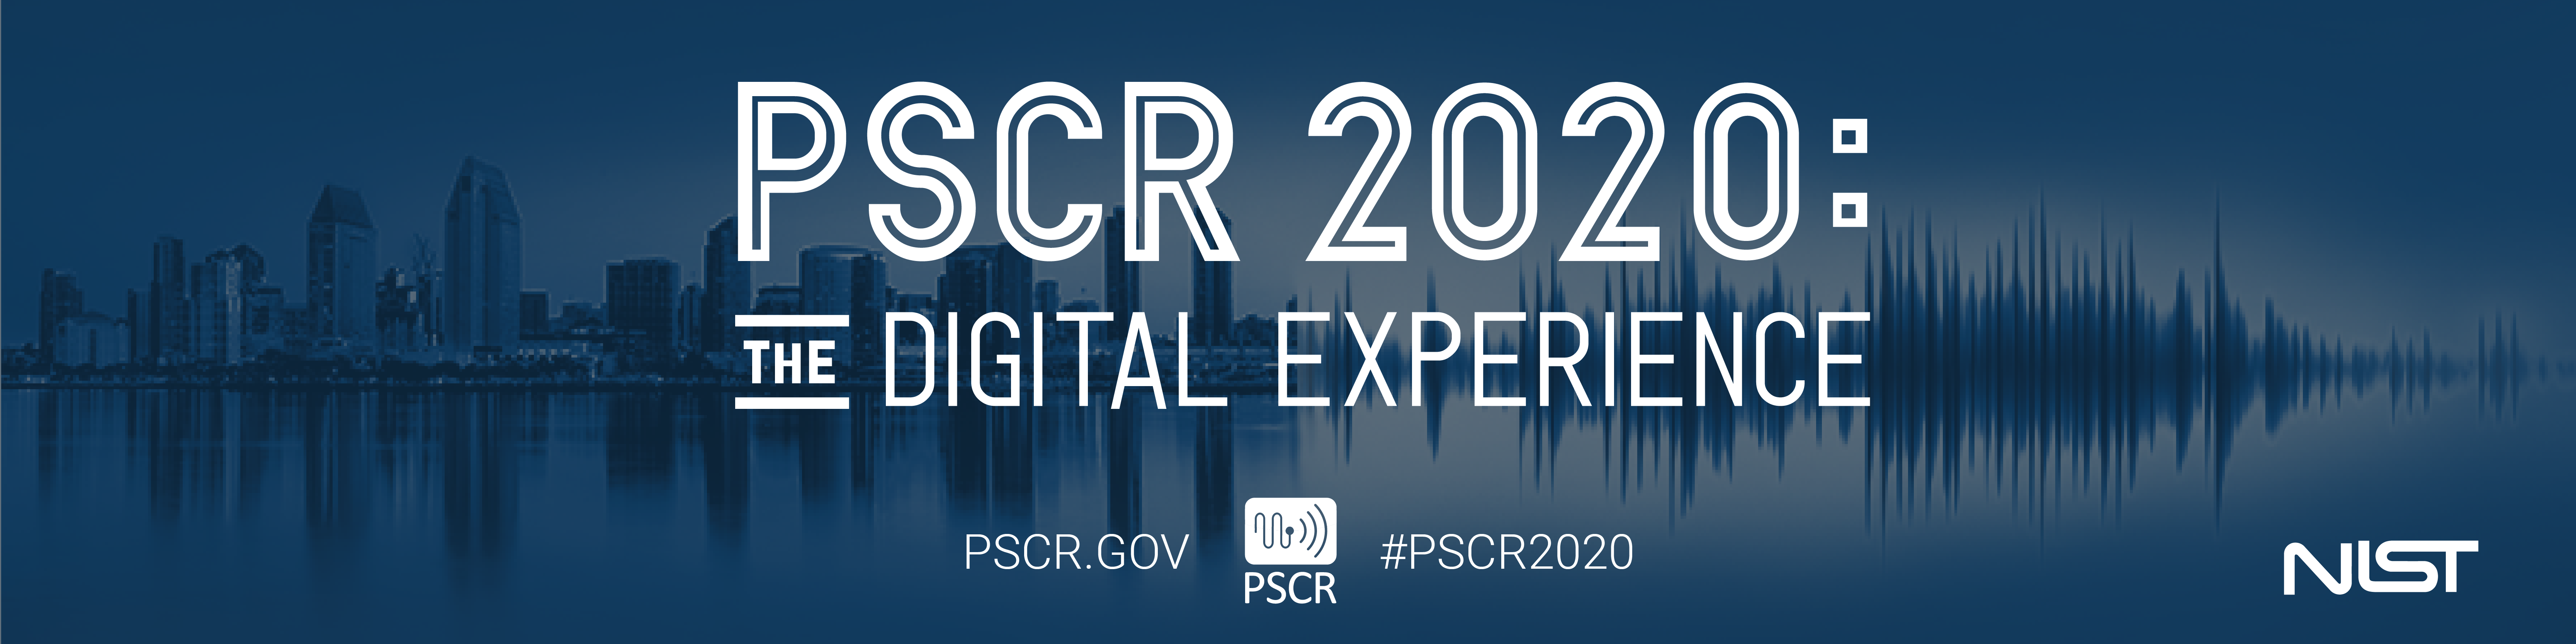 This image background shows the San Diego skyline turning into an audio wave with the text overlay: PSCR 2020 The Digital Experience